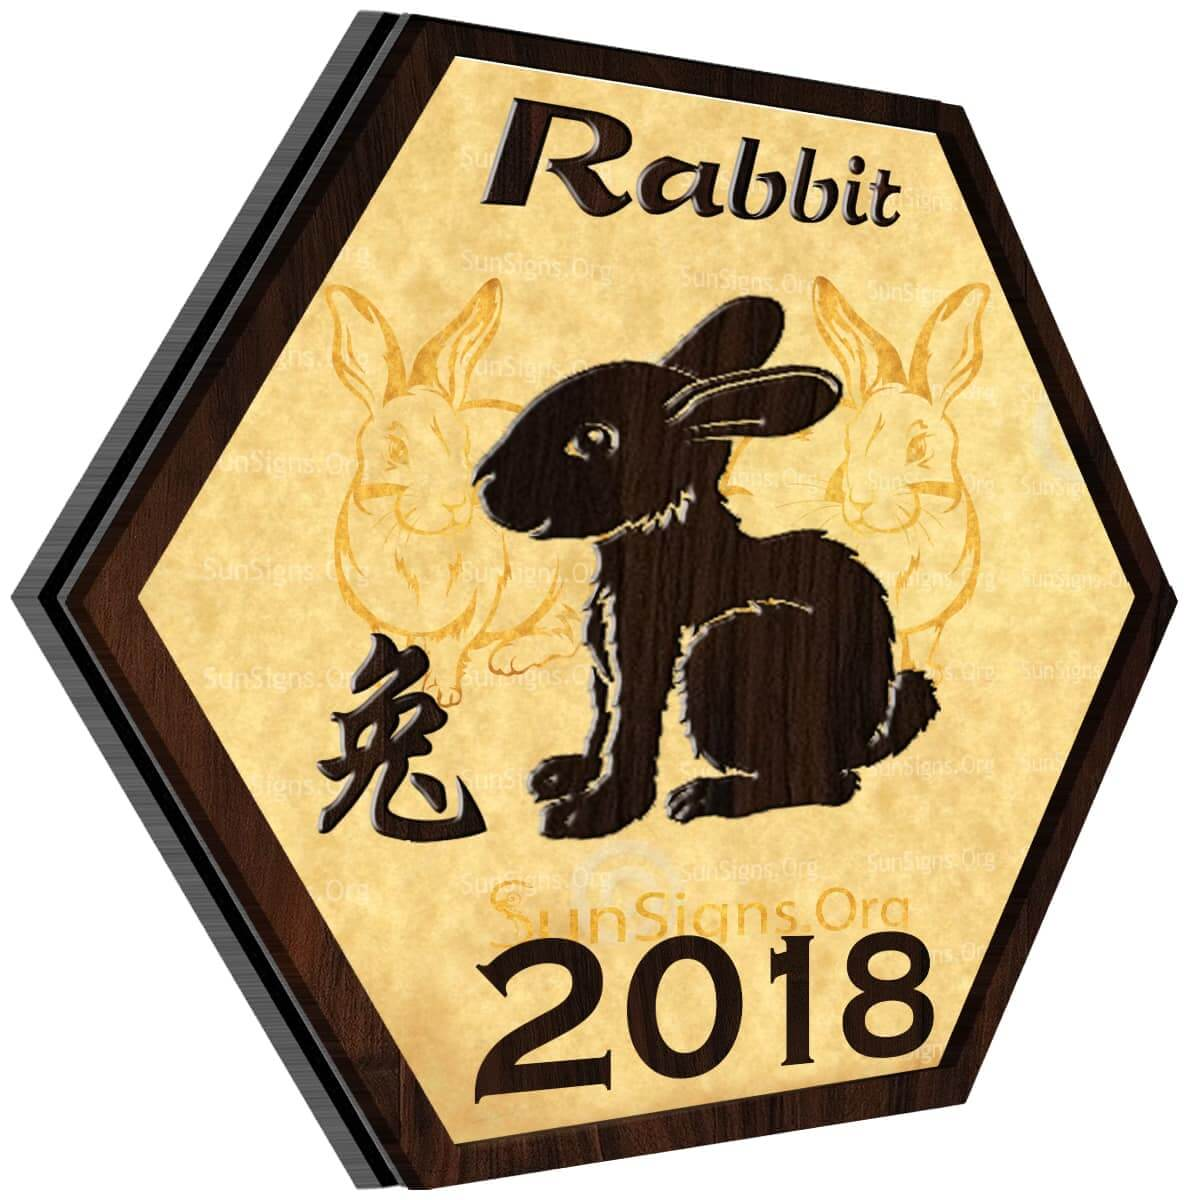 Rabbit Horoscope 2018 Predictions For Love, Finance, Career, Health And Family